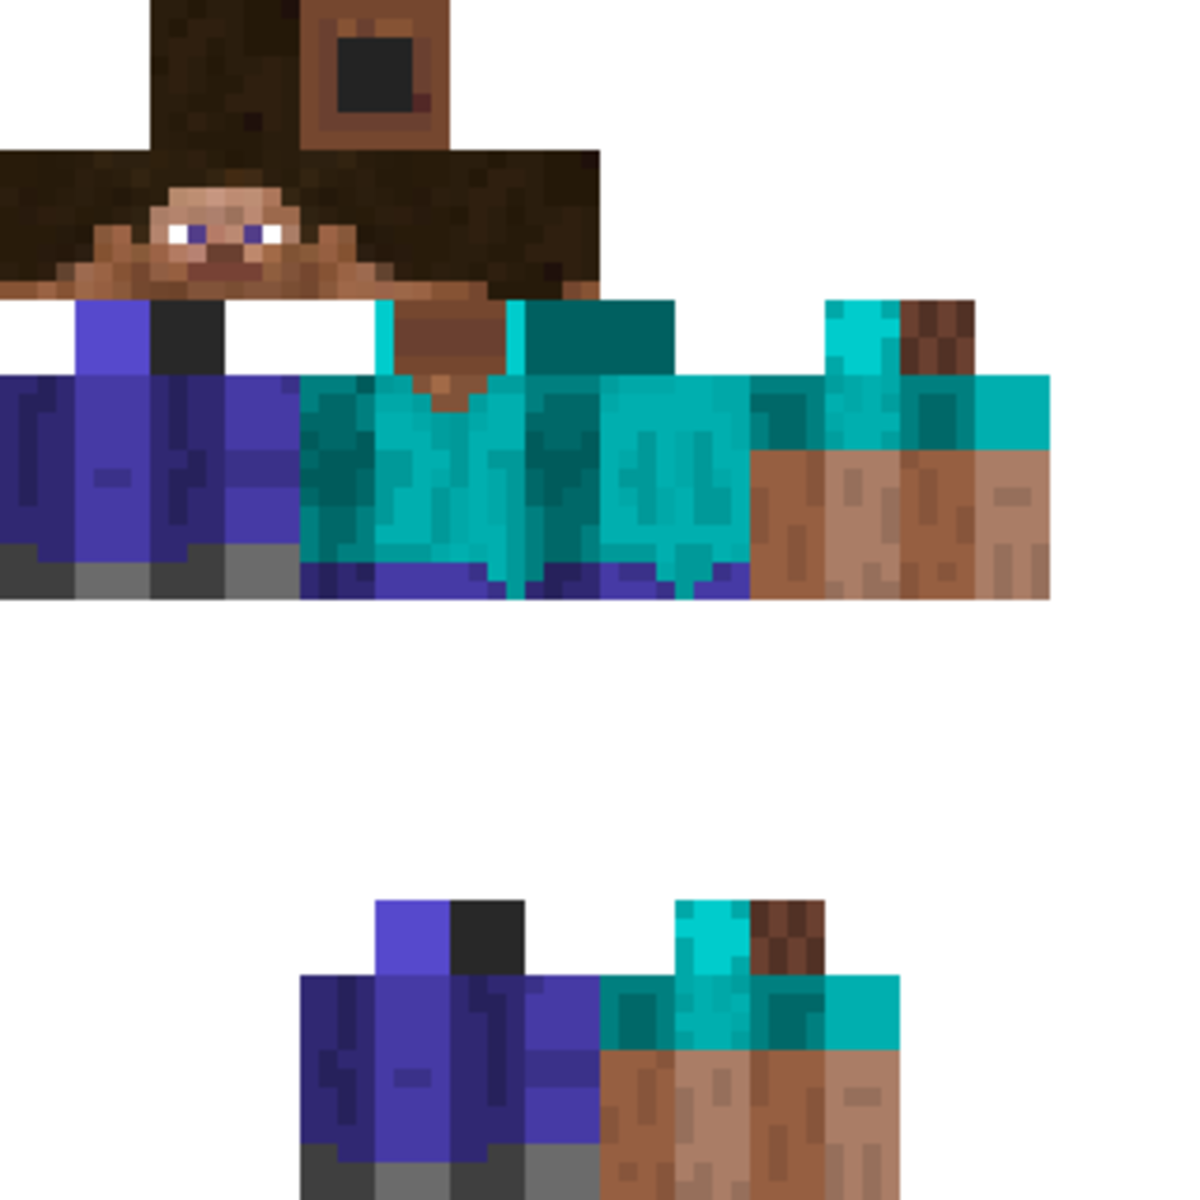 Skin Minecraft Characters Successfully After Reading This